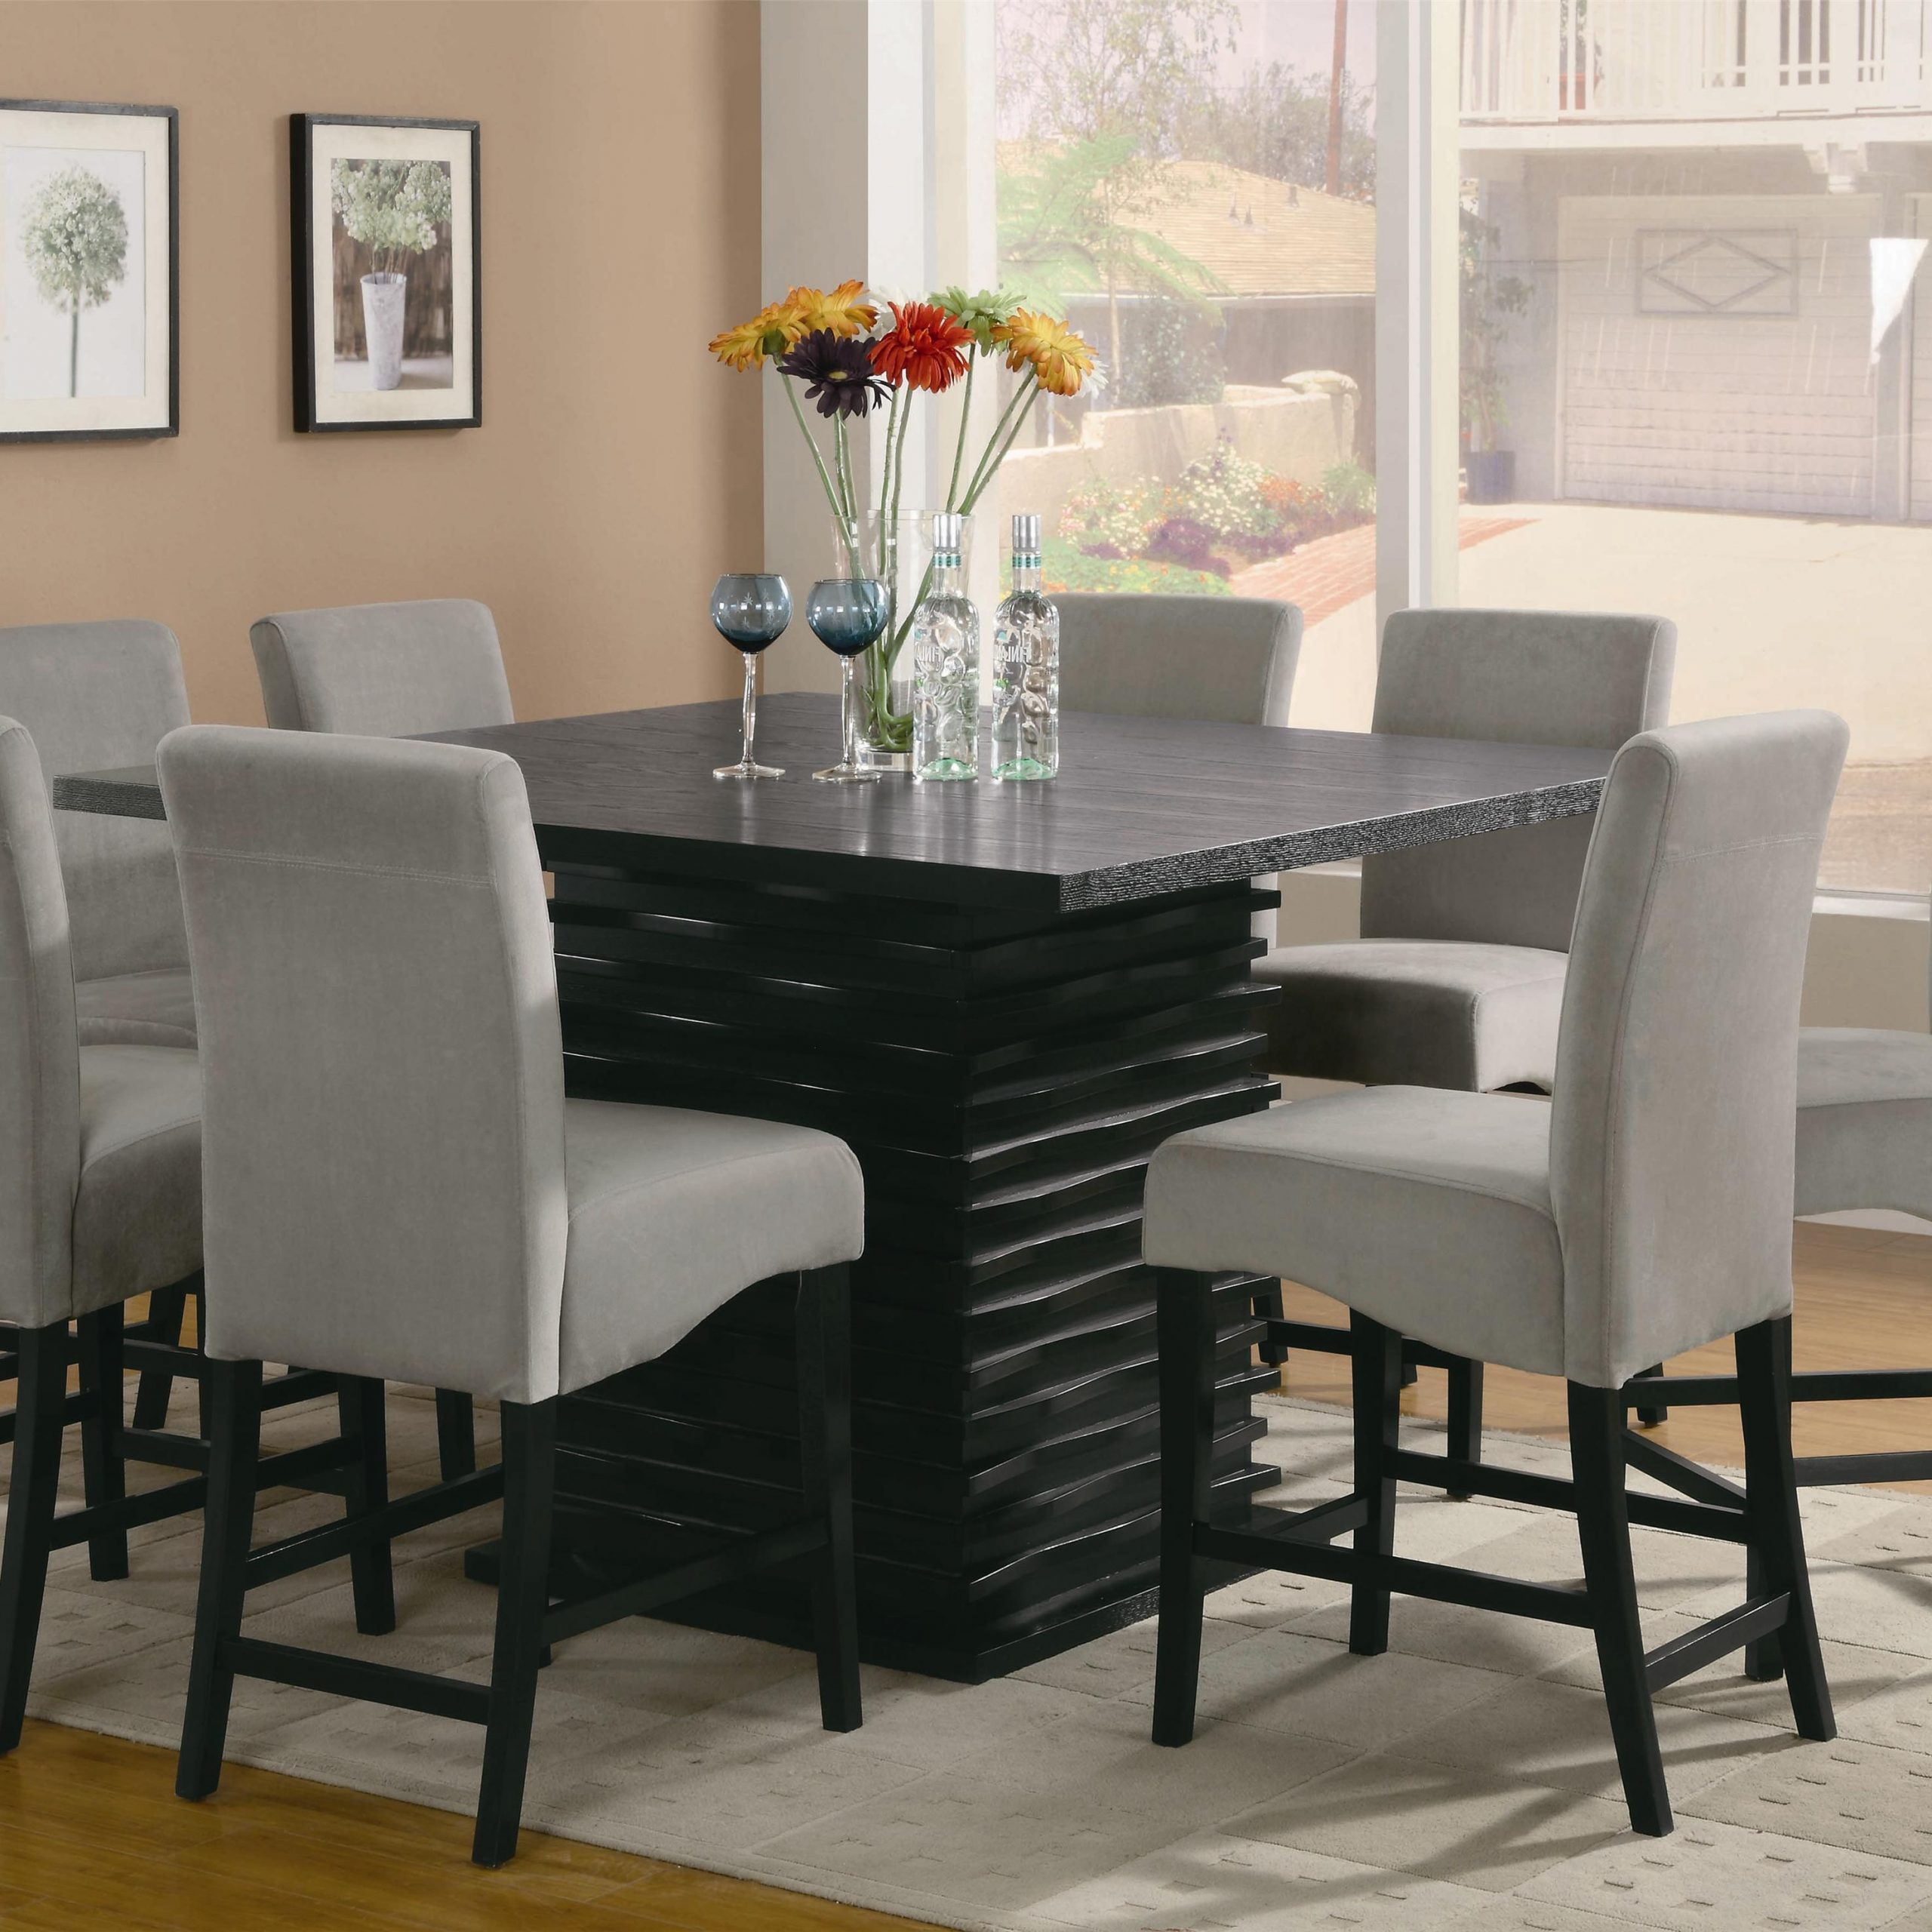 2018 Bistro Transitional 4 Seating Square Dining Tables With Stanton 9 Piece Table And Chair Set (View 13 of 30)